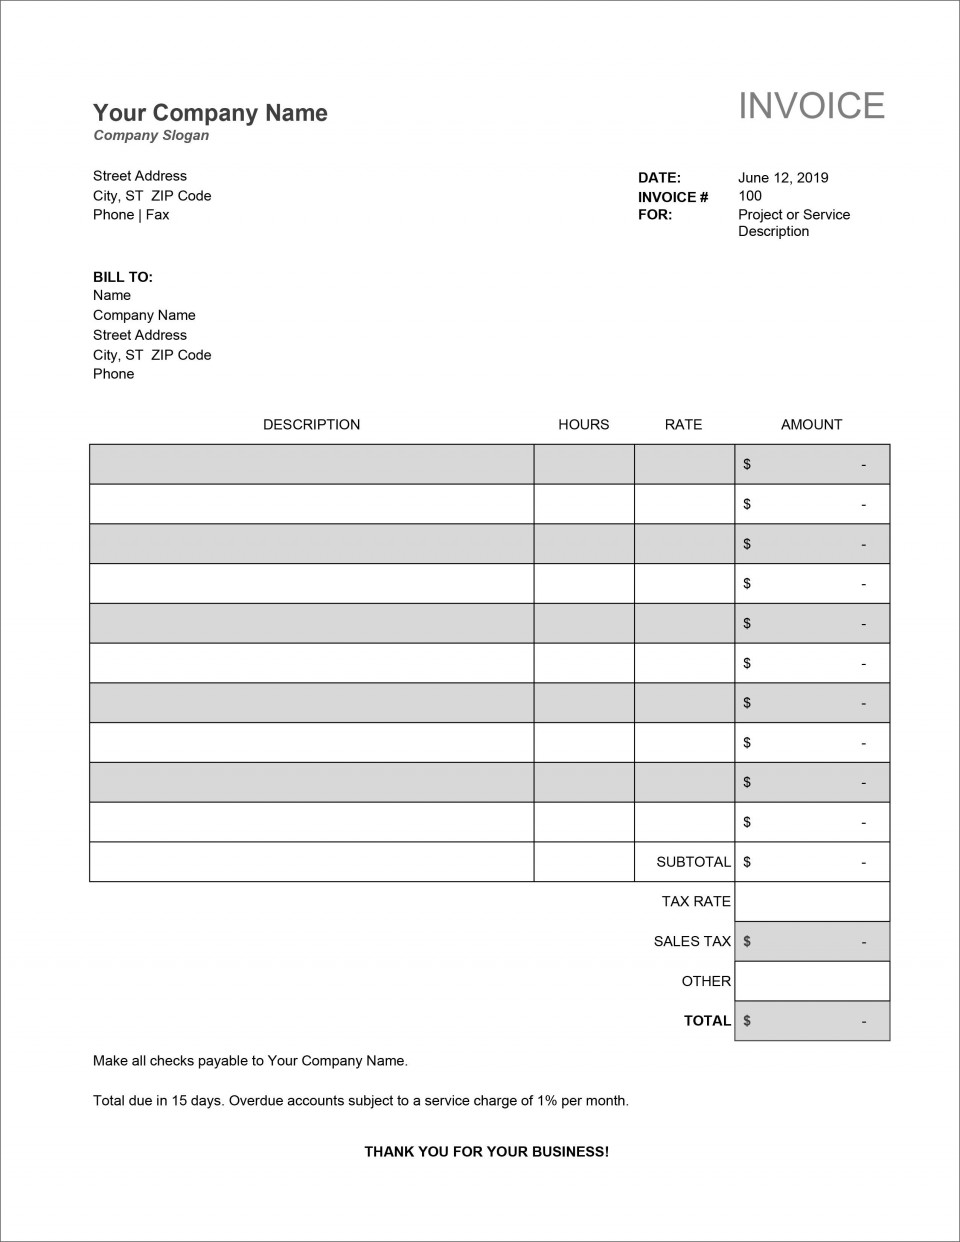 007 Unforgettable Service Invoice Template Free Picture  Rendered Word Auto Download960